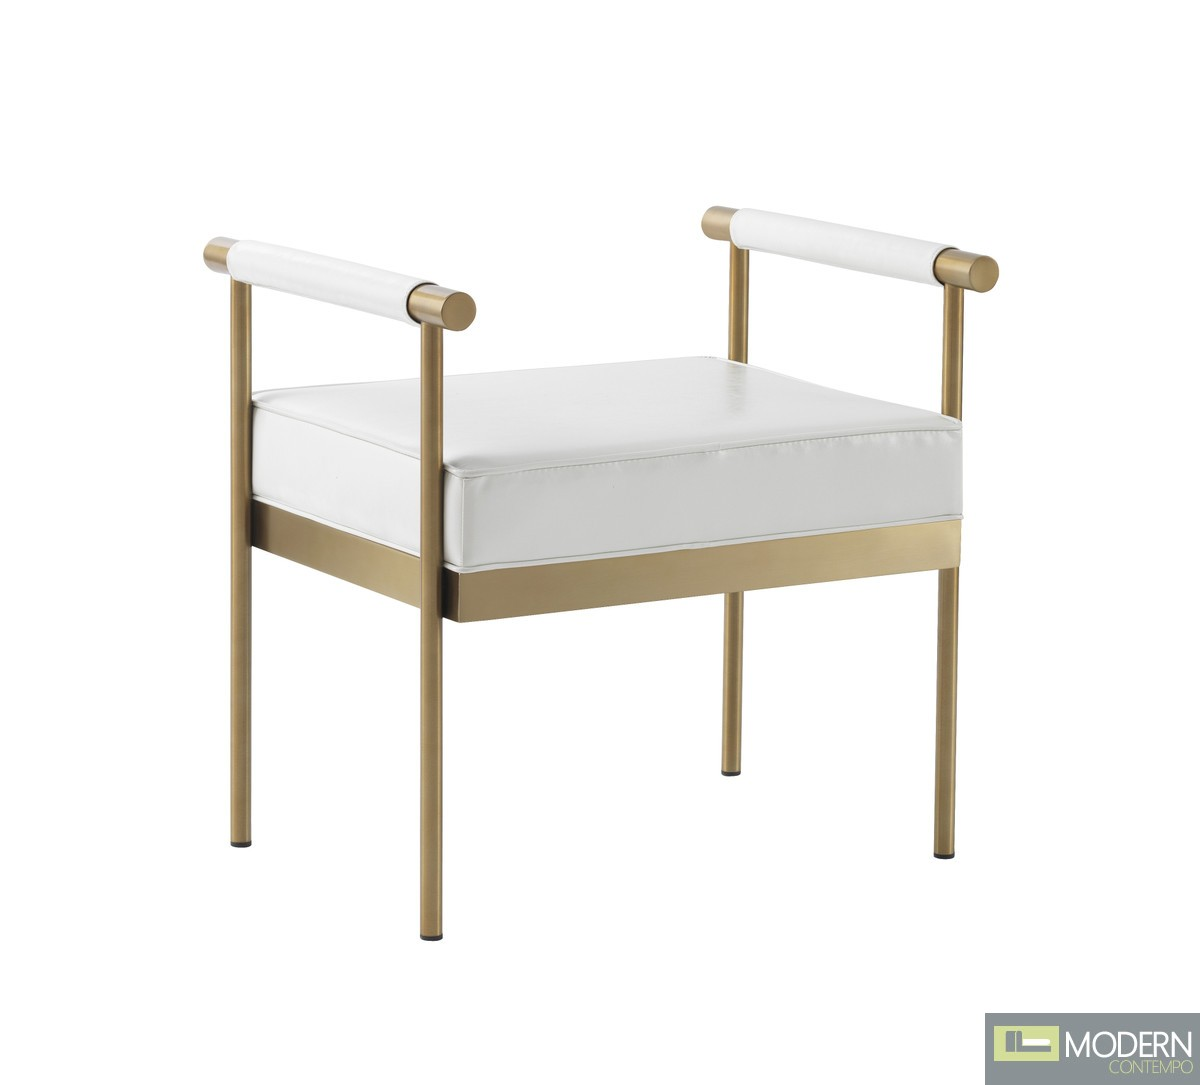 Azzurra White Vegan Leather Bench